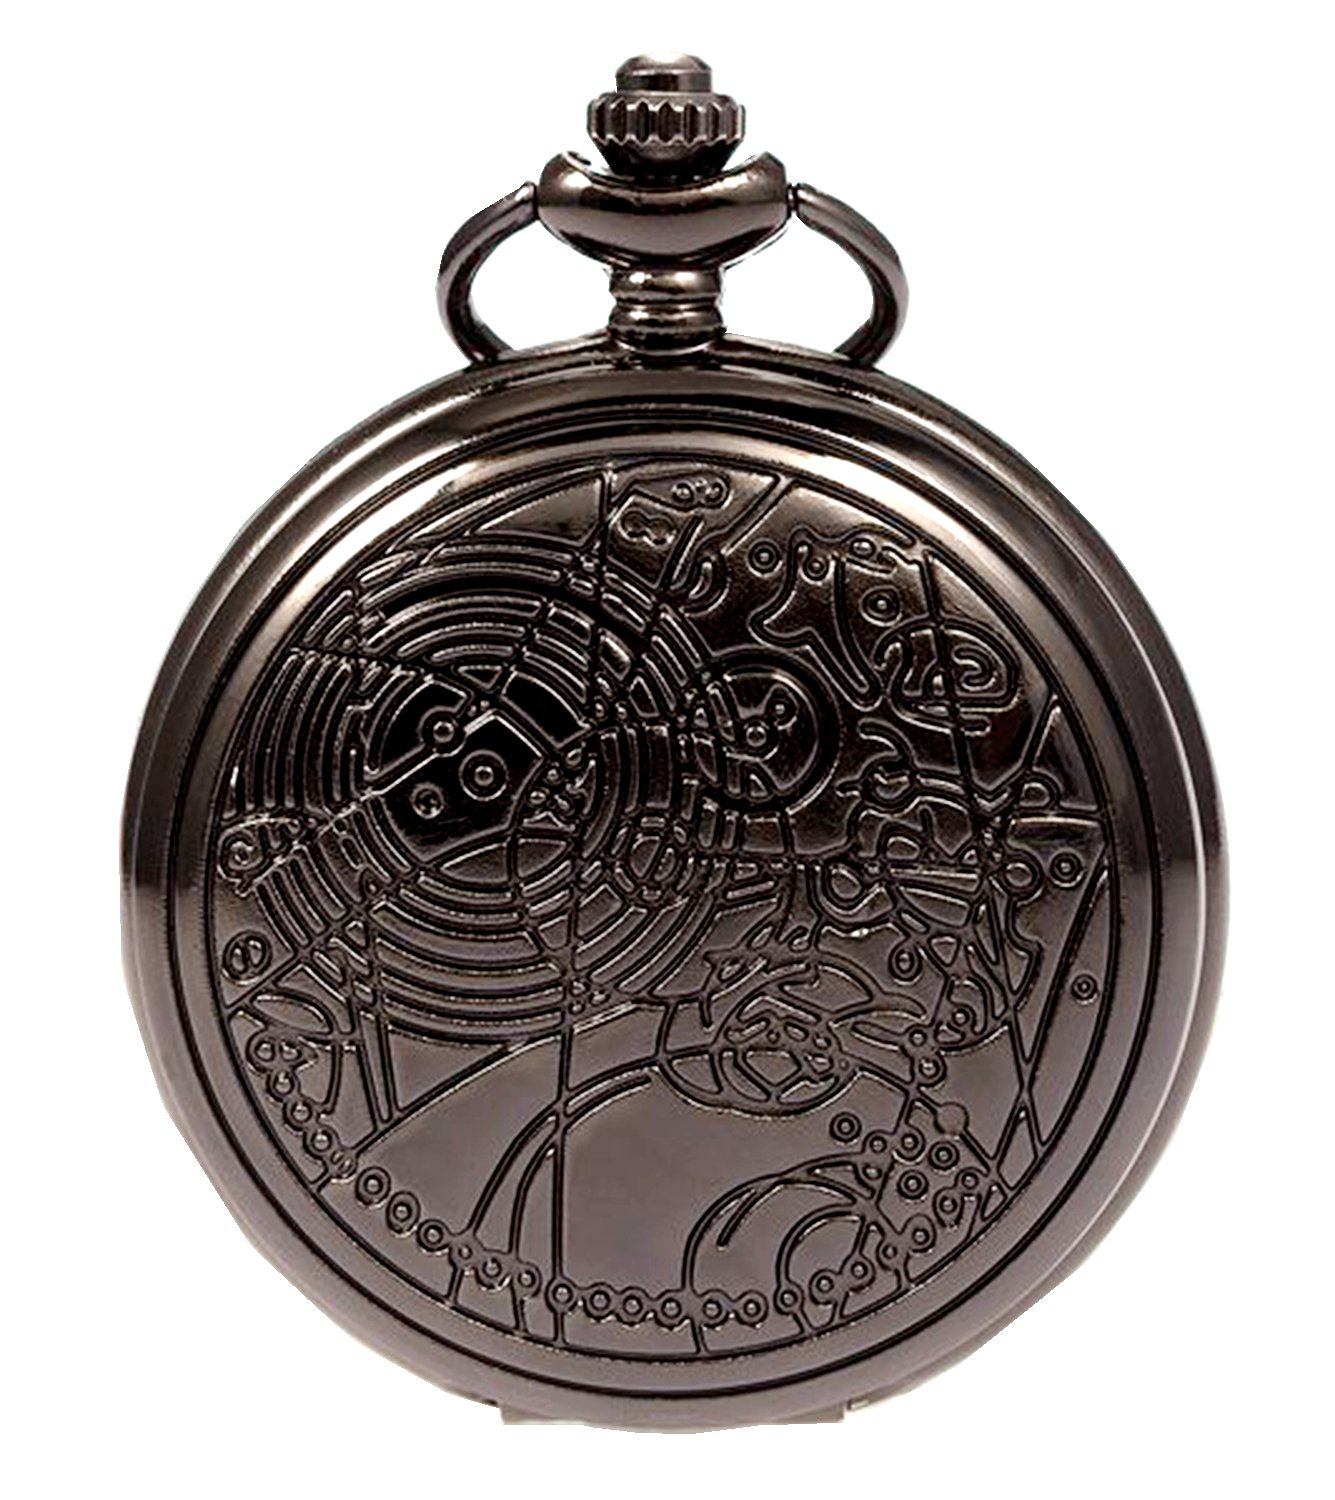 Vintage Black Doctor Who Retro Dr. Who Quartz Pocket Watch with Chain & Gift Box by New Brand Mall (Image #1)